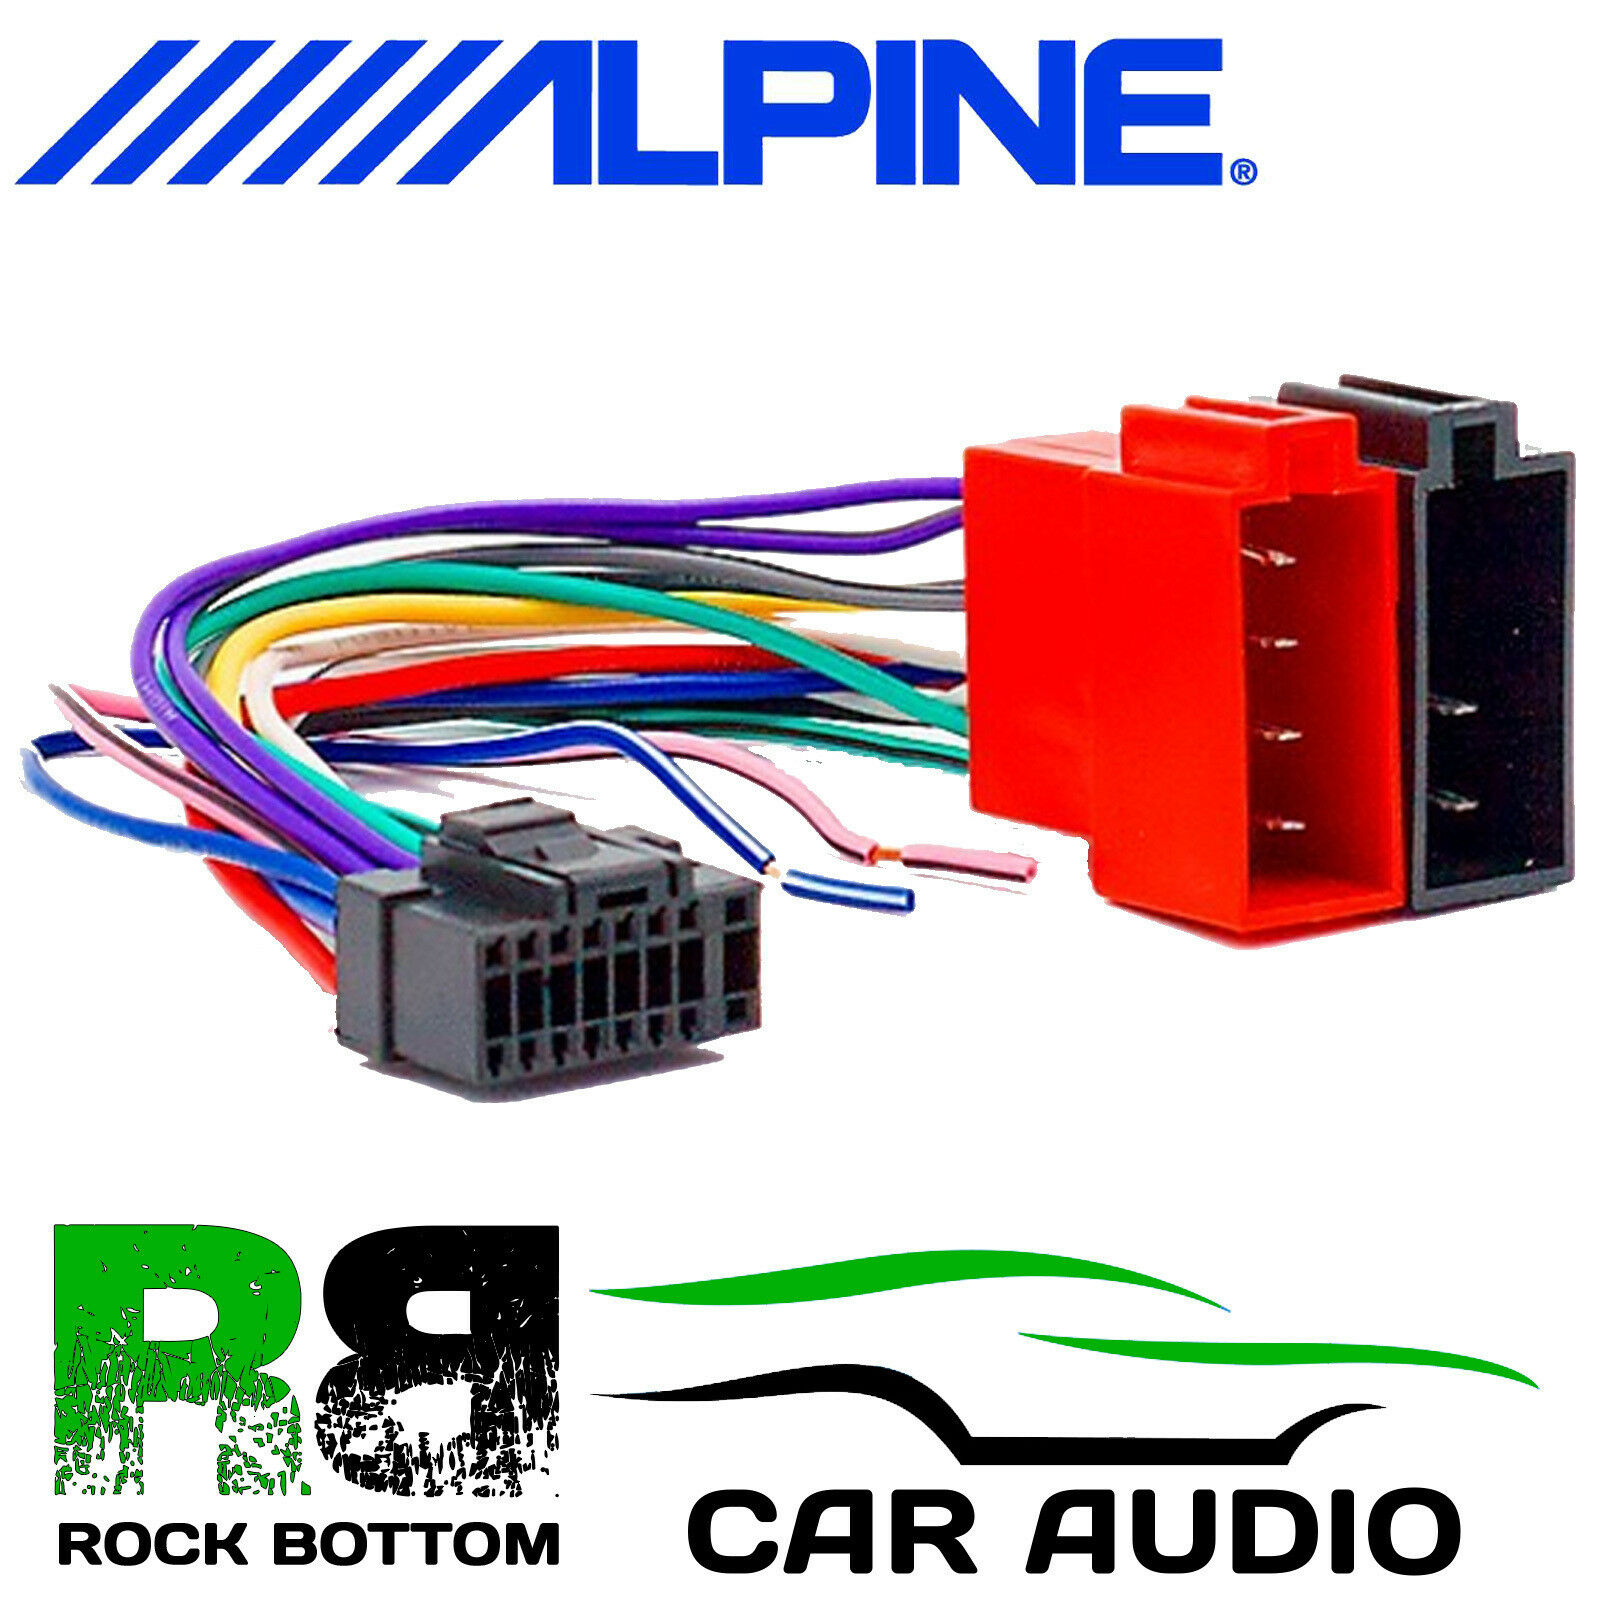 Alpine Cde 103bt Car Radio Stereo 16 Pin Wiring Harness Loom Iso Lead Adaptor 1 Of 1free Shipping See More